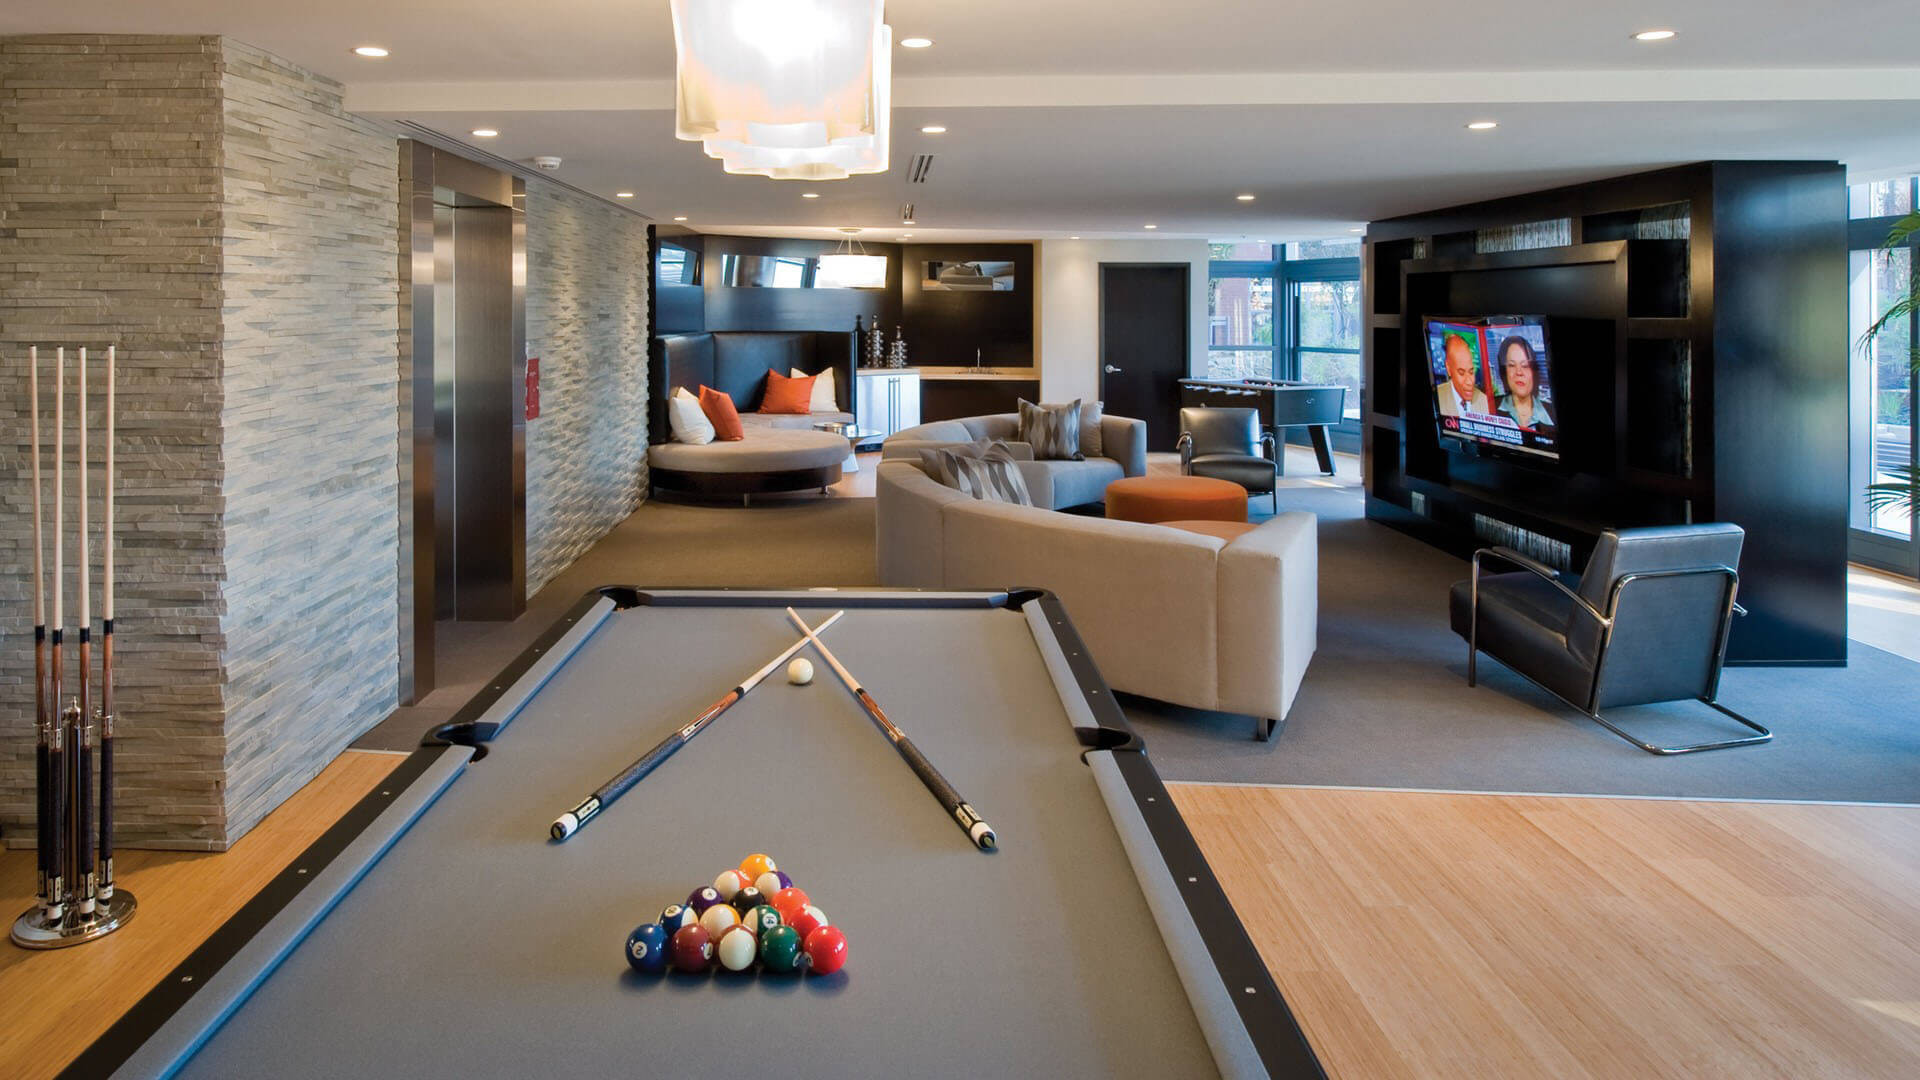 Best ideas about Ace Game Room . Save or Pin How to Design Your Dream Game Room Now.